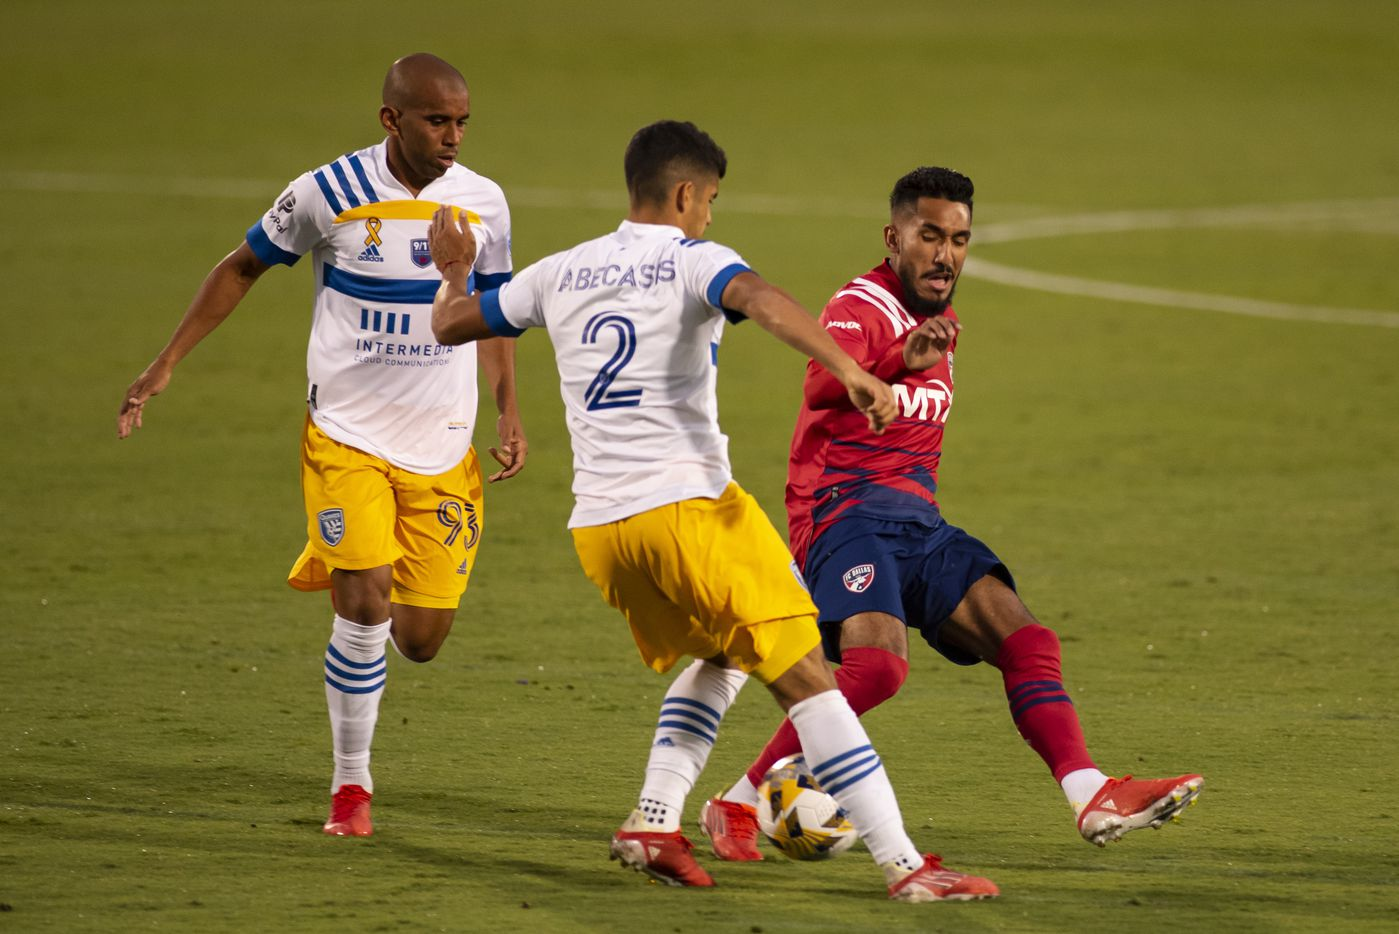 FC Dallas forward Jesus Ferreira (9) attempts to gain control of the ball against San Jose defender Luciano Abecasis (2) during FC DallasÕ home game against the San Jose Earthquakes at Toyota Stadium in Frisco, Texas on Saturday, September 11, 2021. (Emil Lippe/Special Contributor)